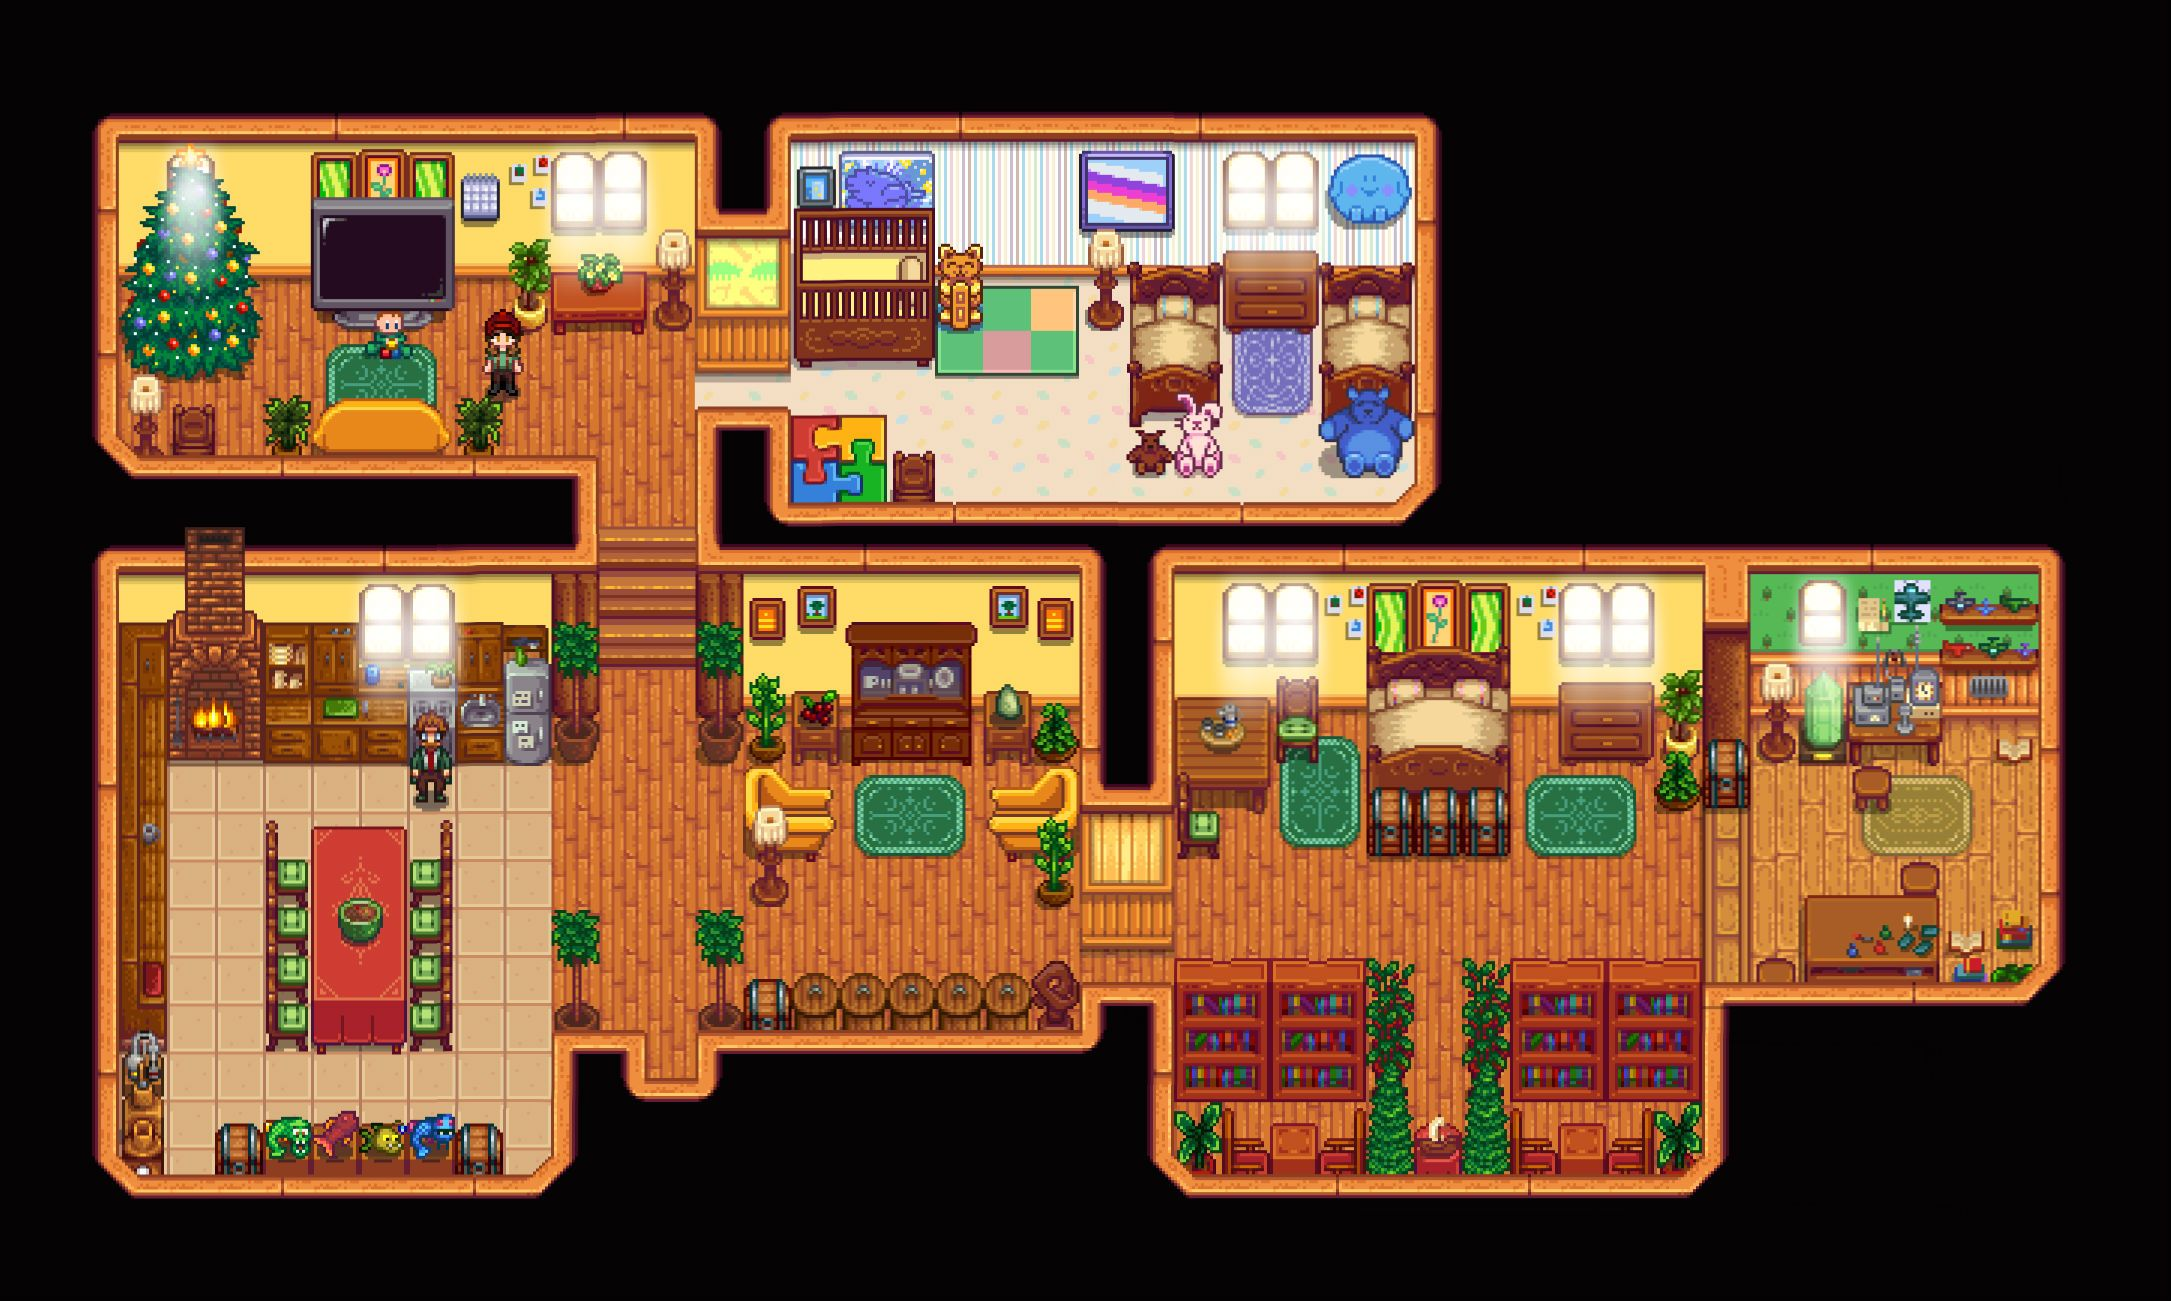 nhkwwog stardew valley layout game fandoms also best images in rh pinterest